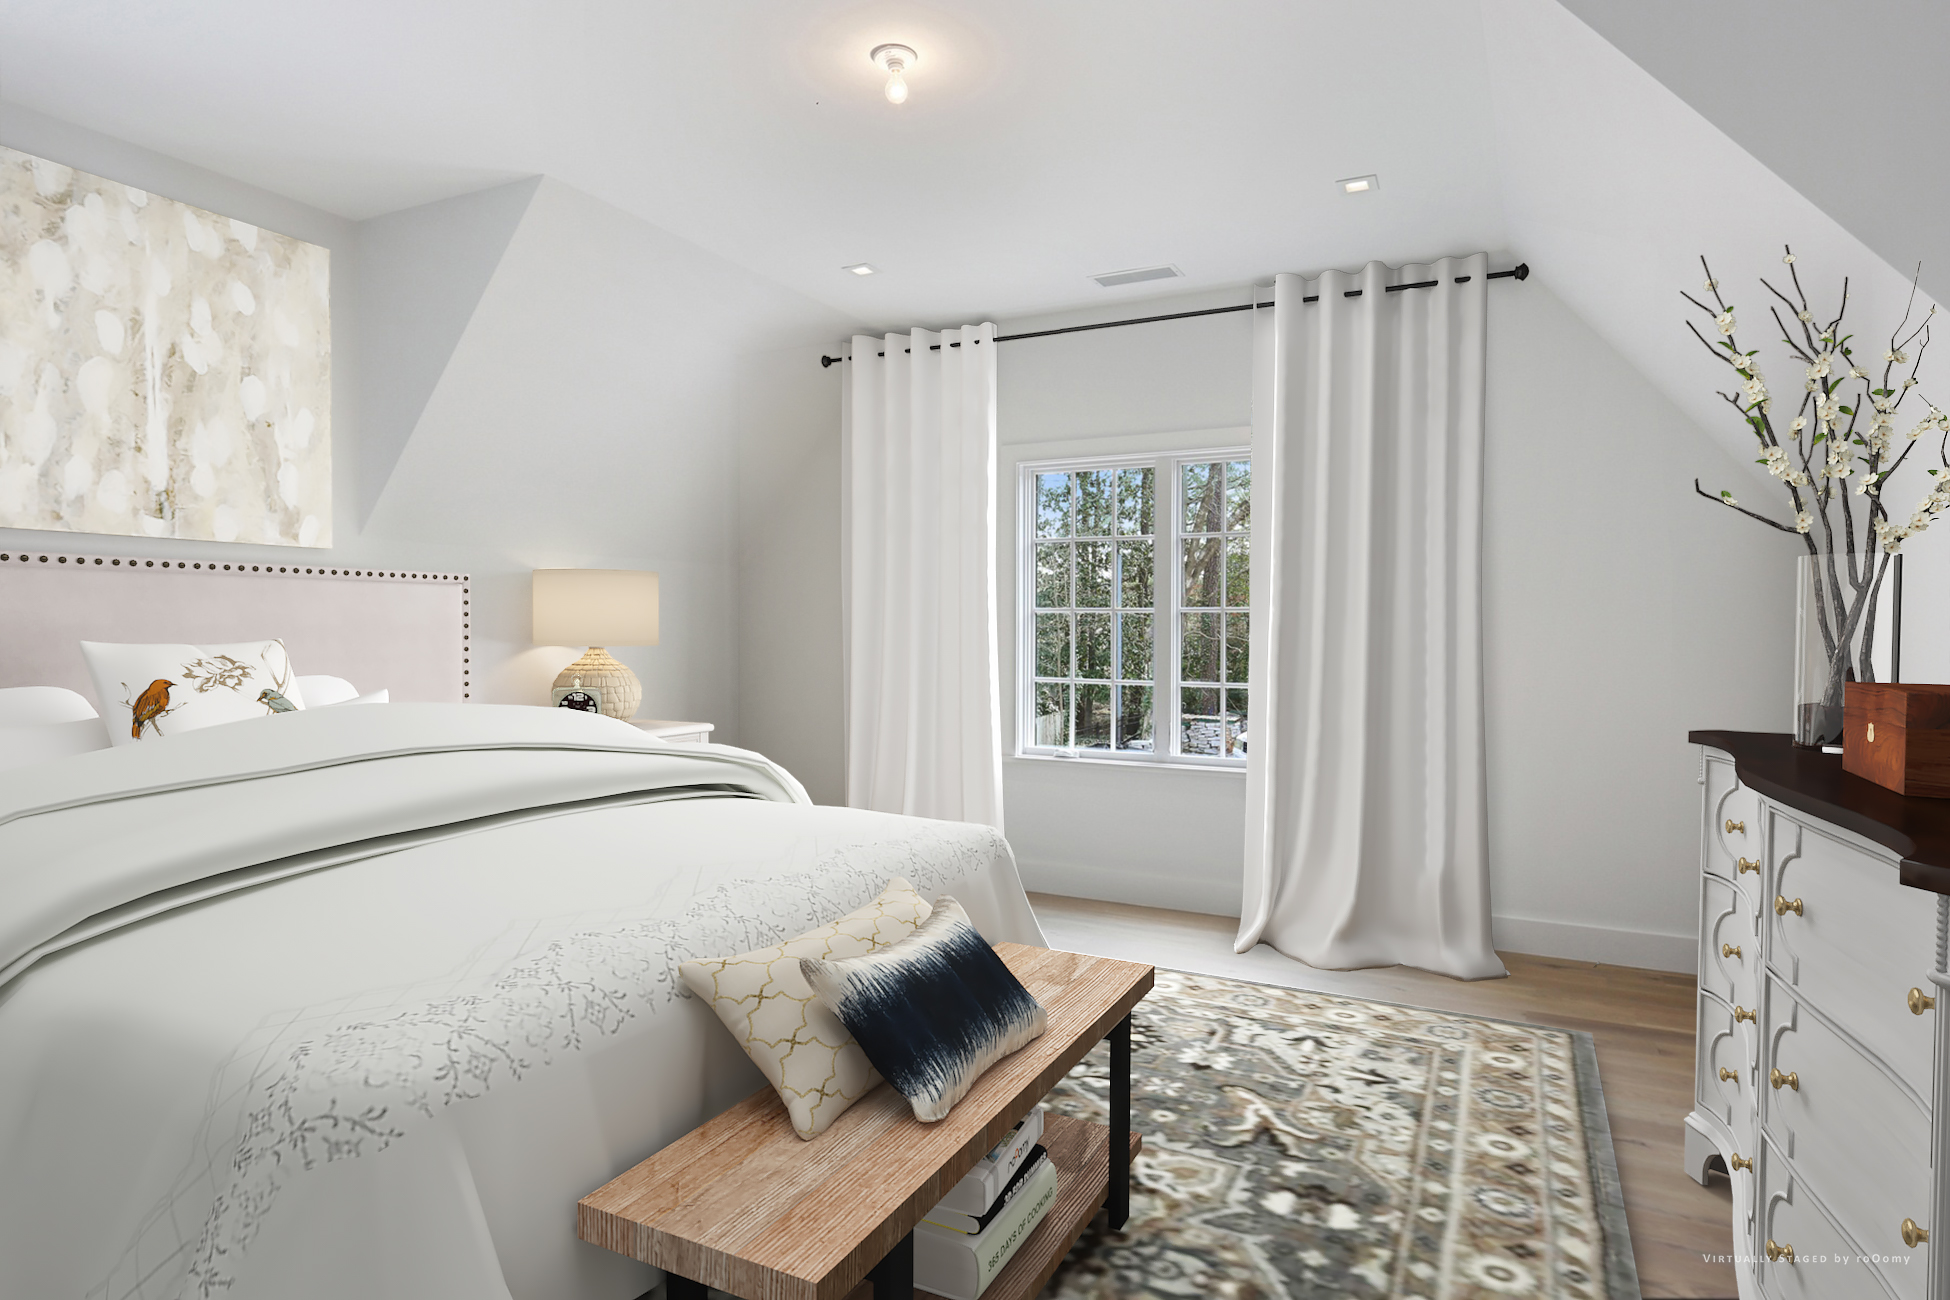 Bedroom4 - Transitional_Render.jpg